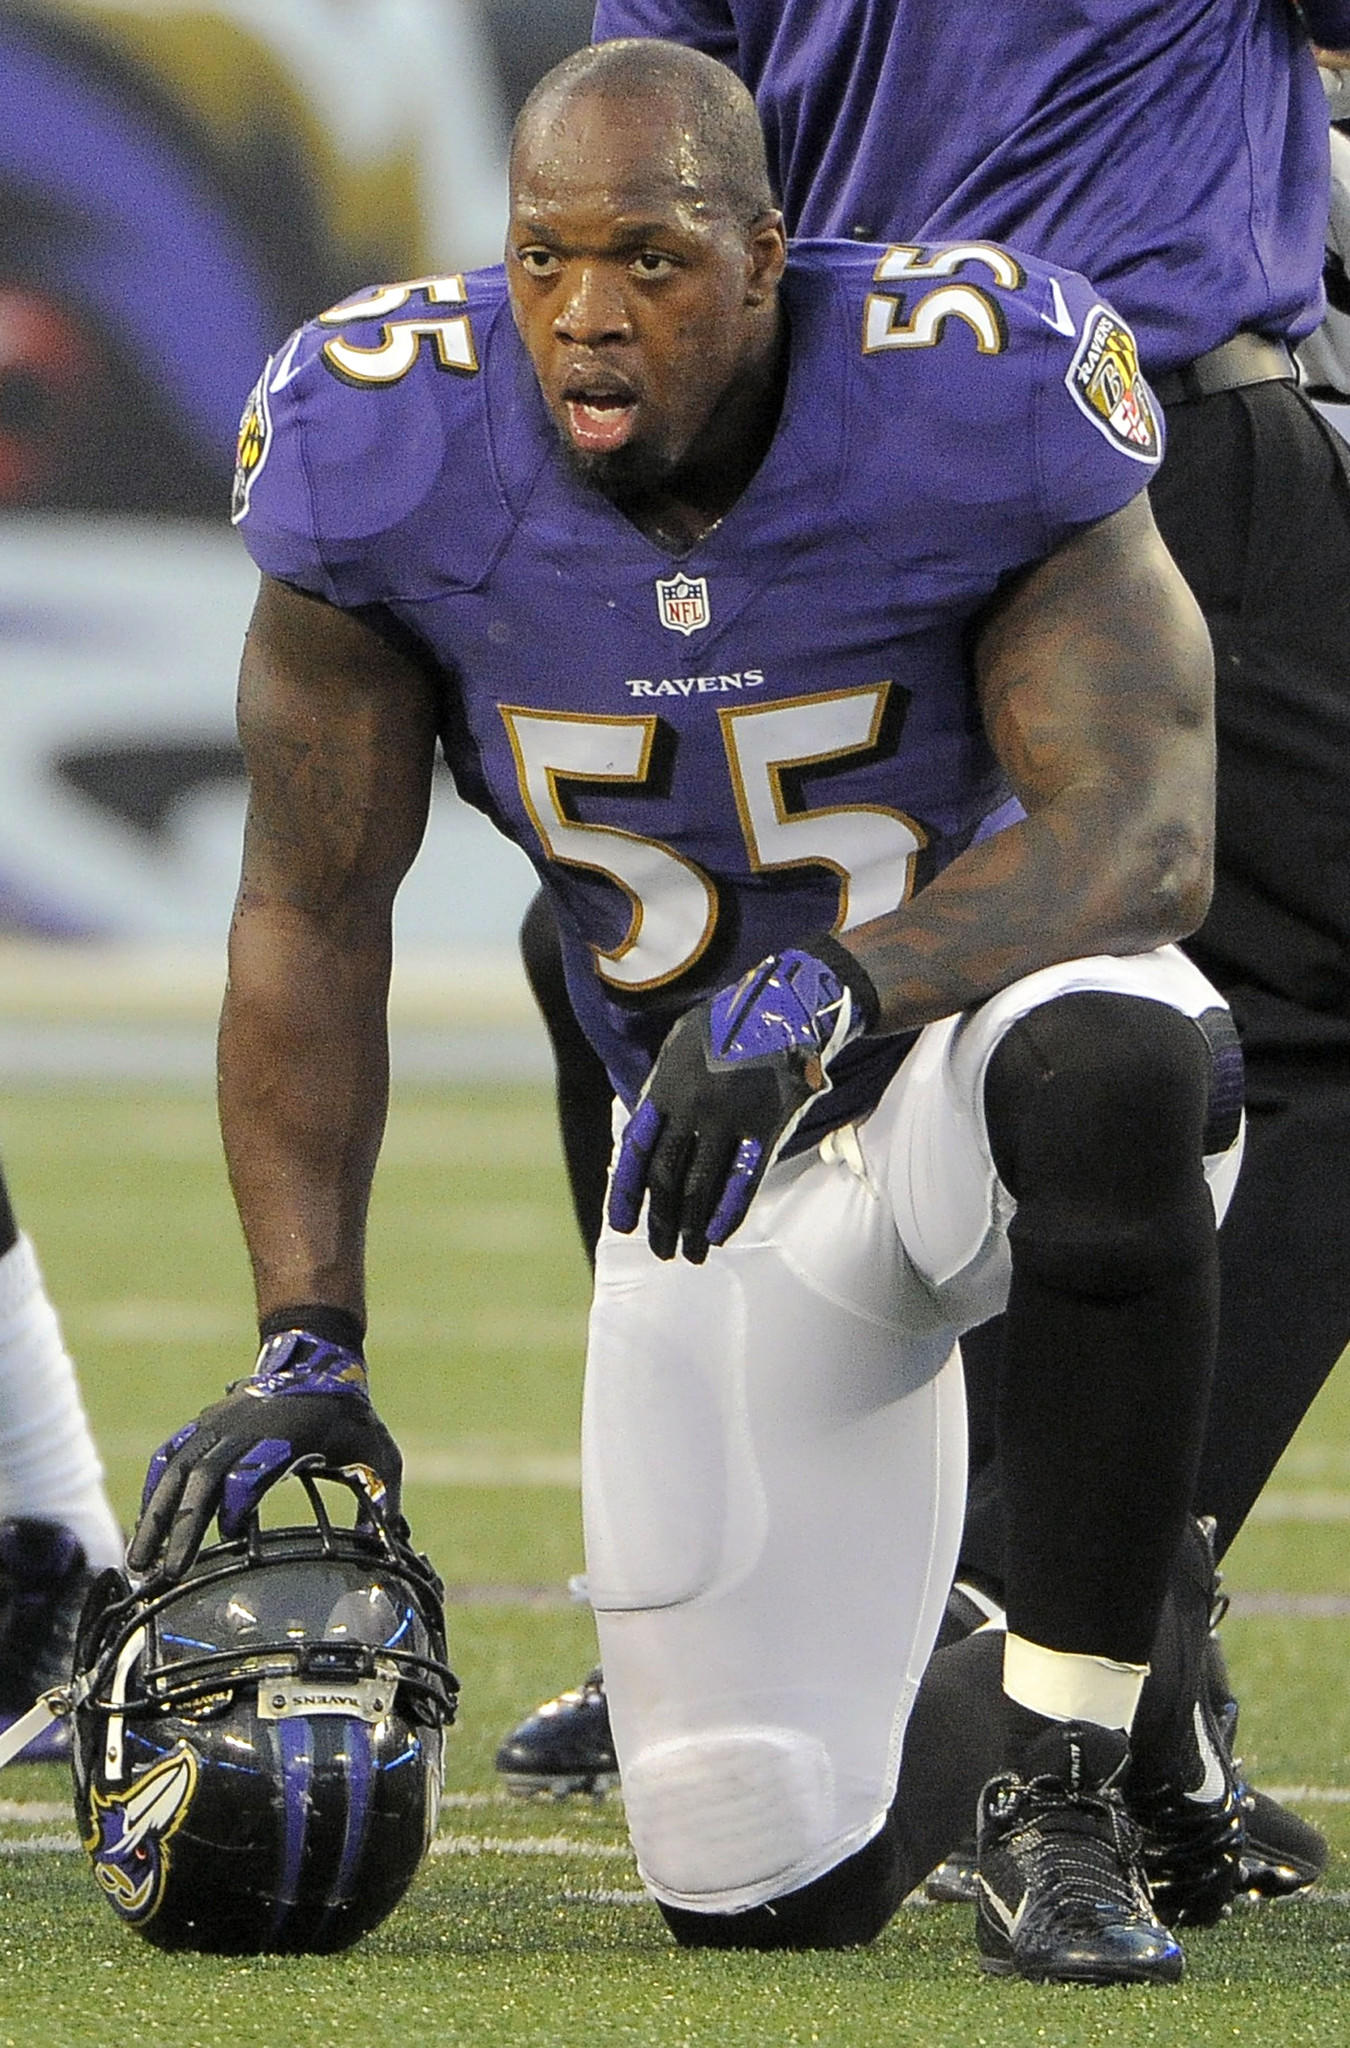 Ravens linebacker Terrell Suggs waits on the sidelines during a game earlier this season.